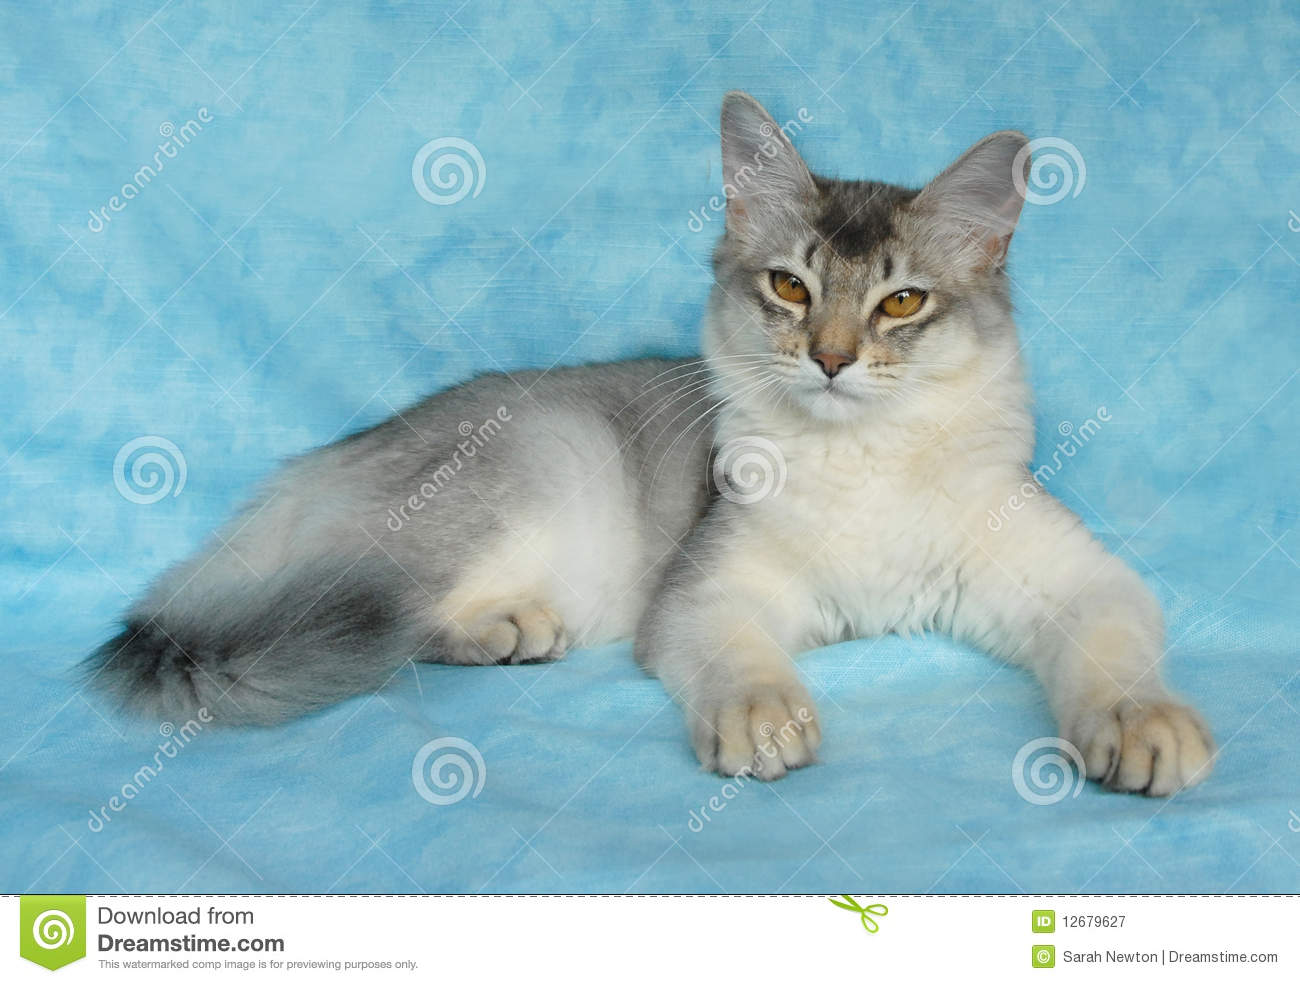 ba798bcd0ca Blue Silver Somali Cat Stock Images - Download 26 Royalty Free Photos